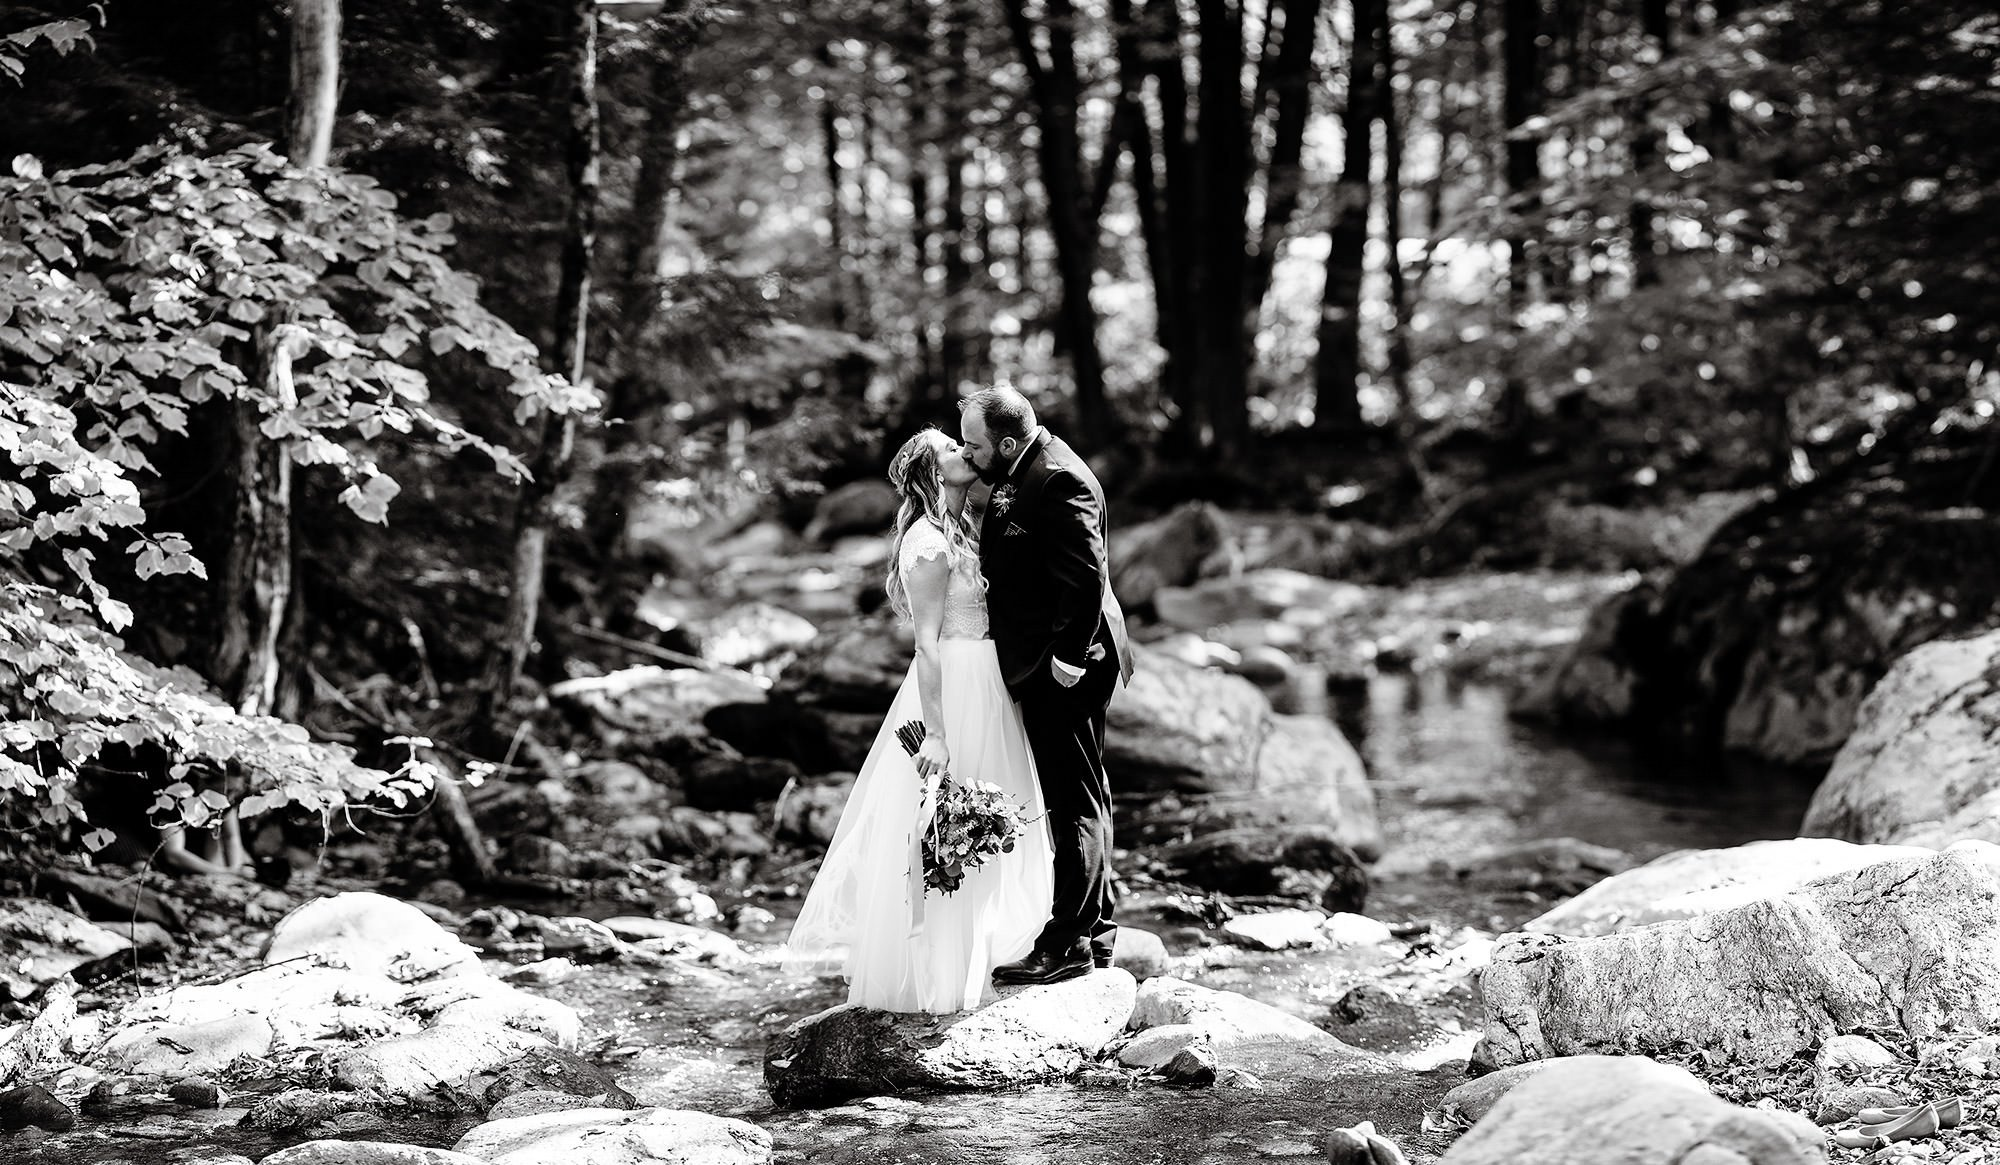 The bride and groom kiss while standing on a rock in Mill Brook.